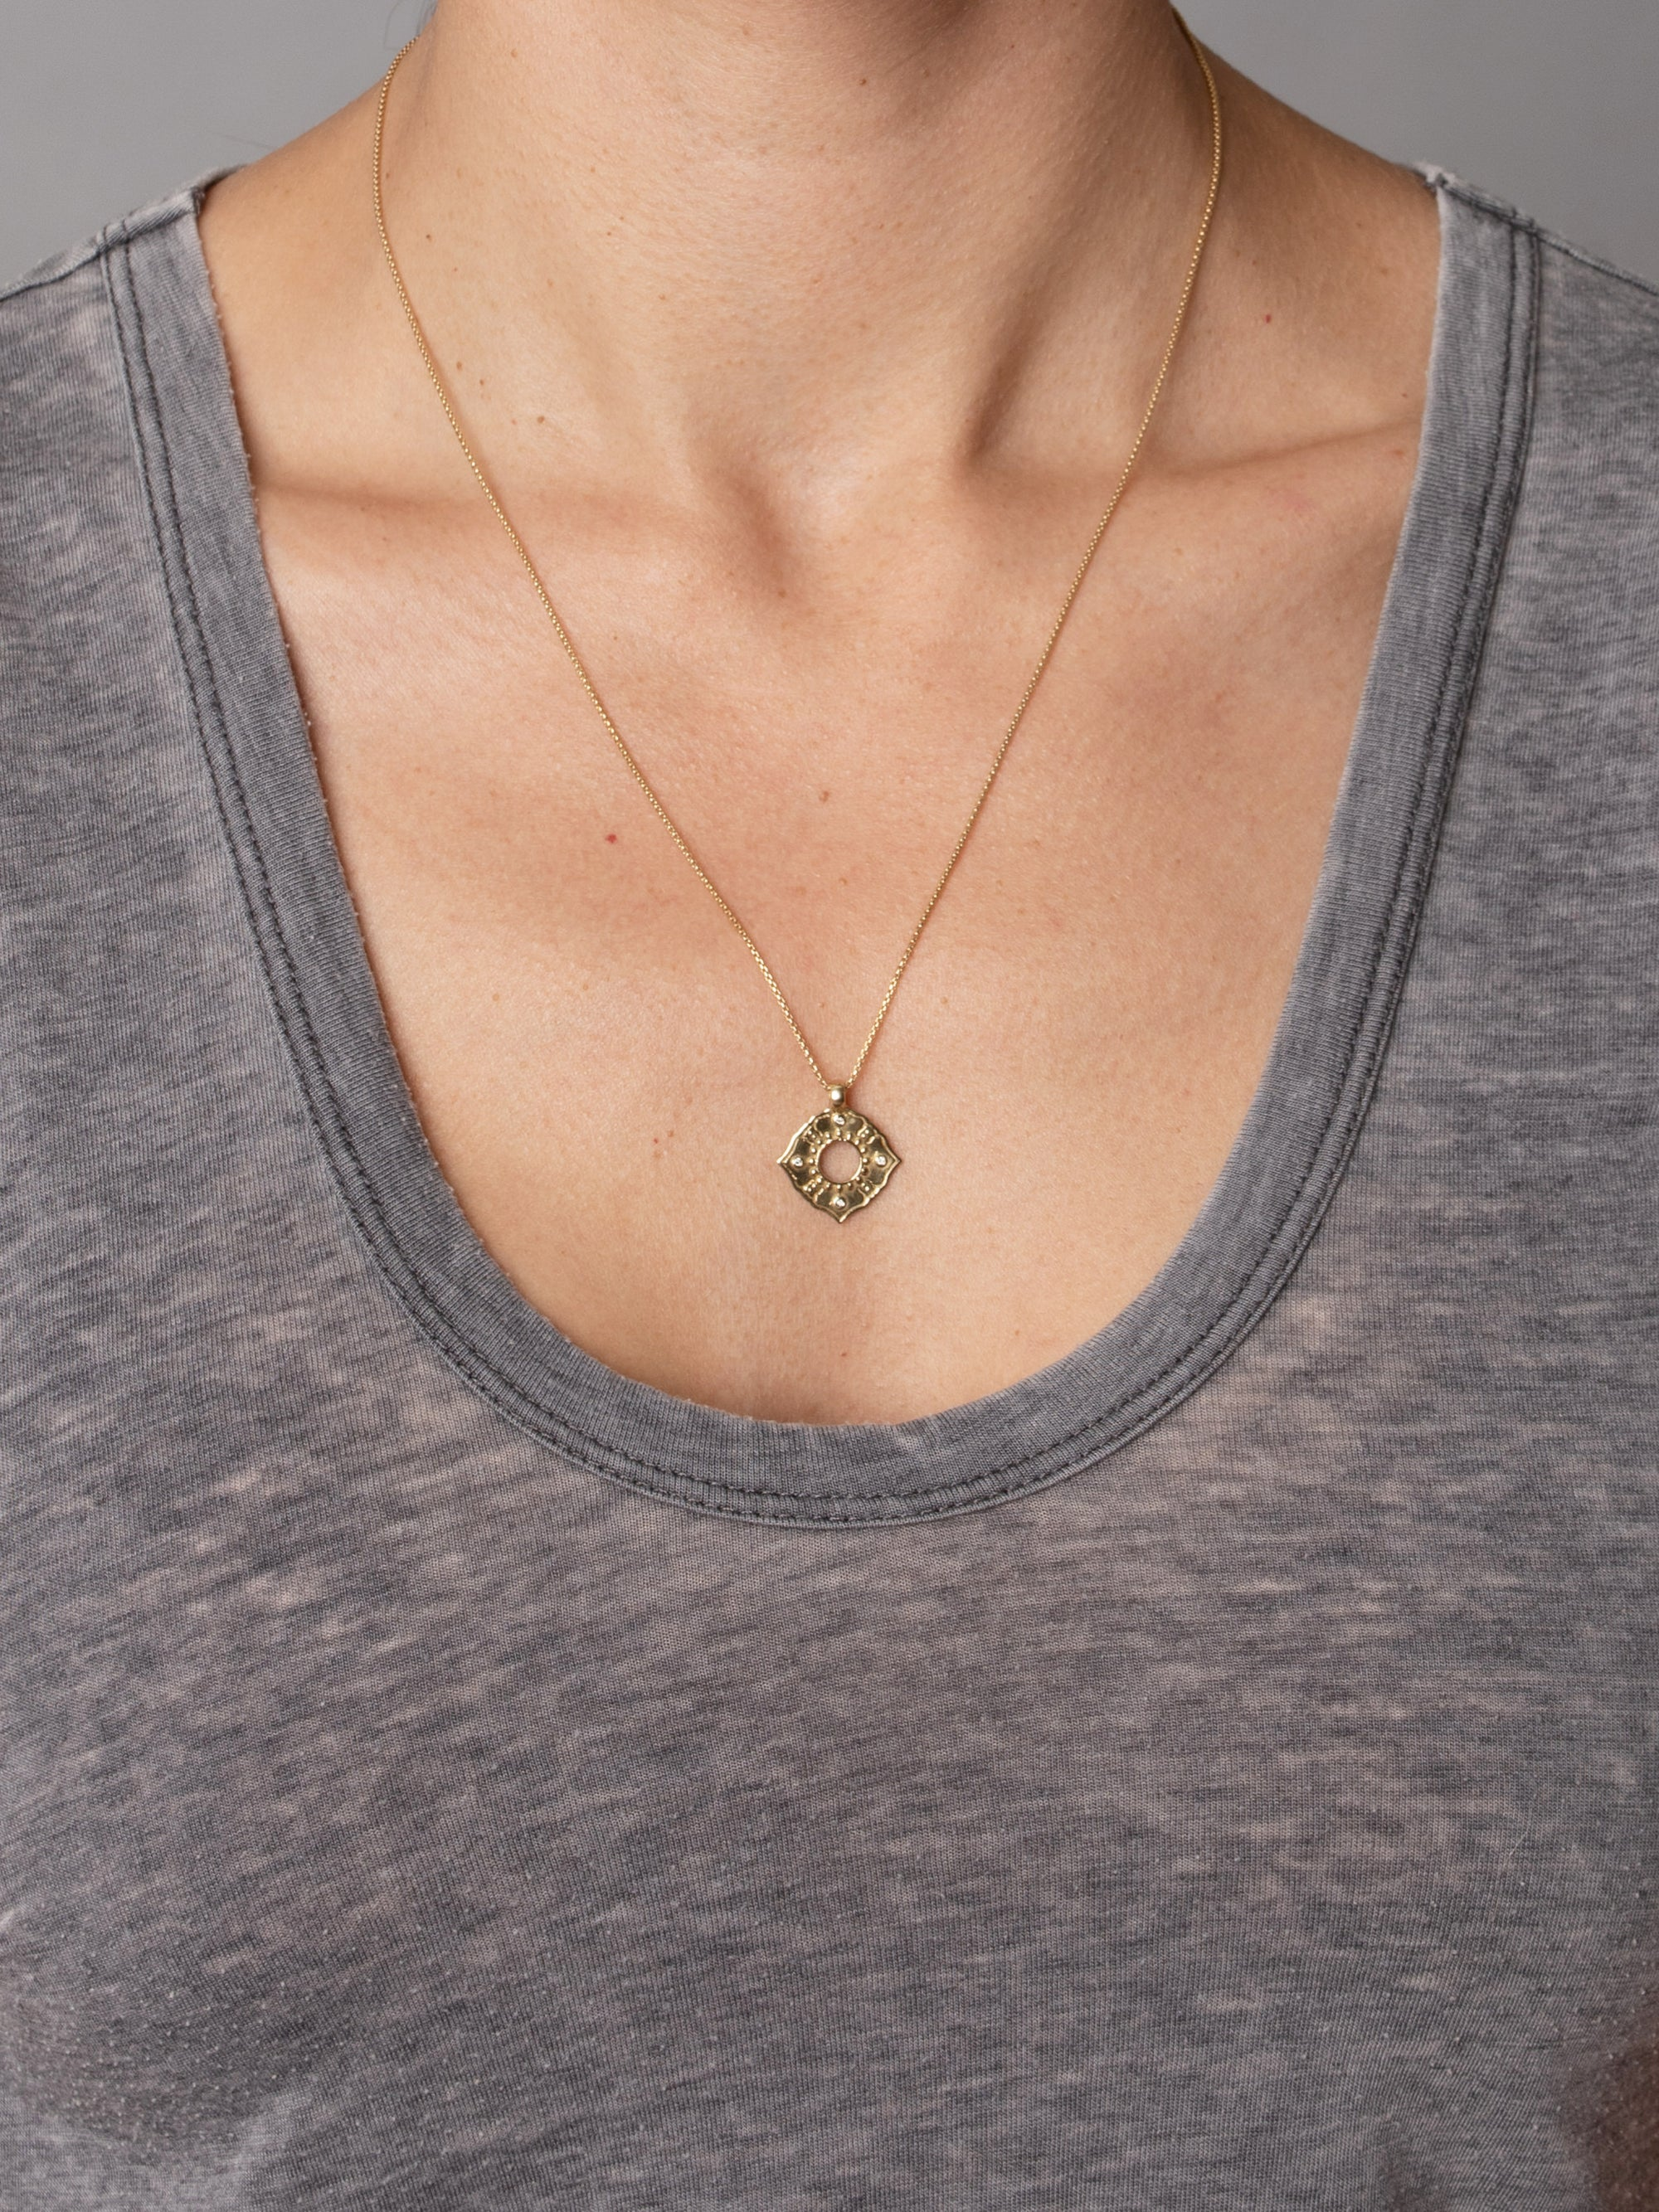 "Anahata Necklace ""boundless heart"""